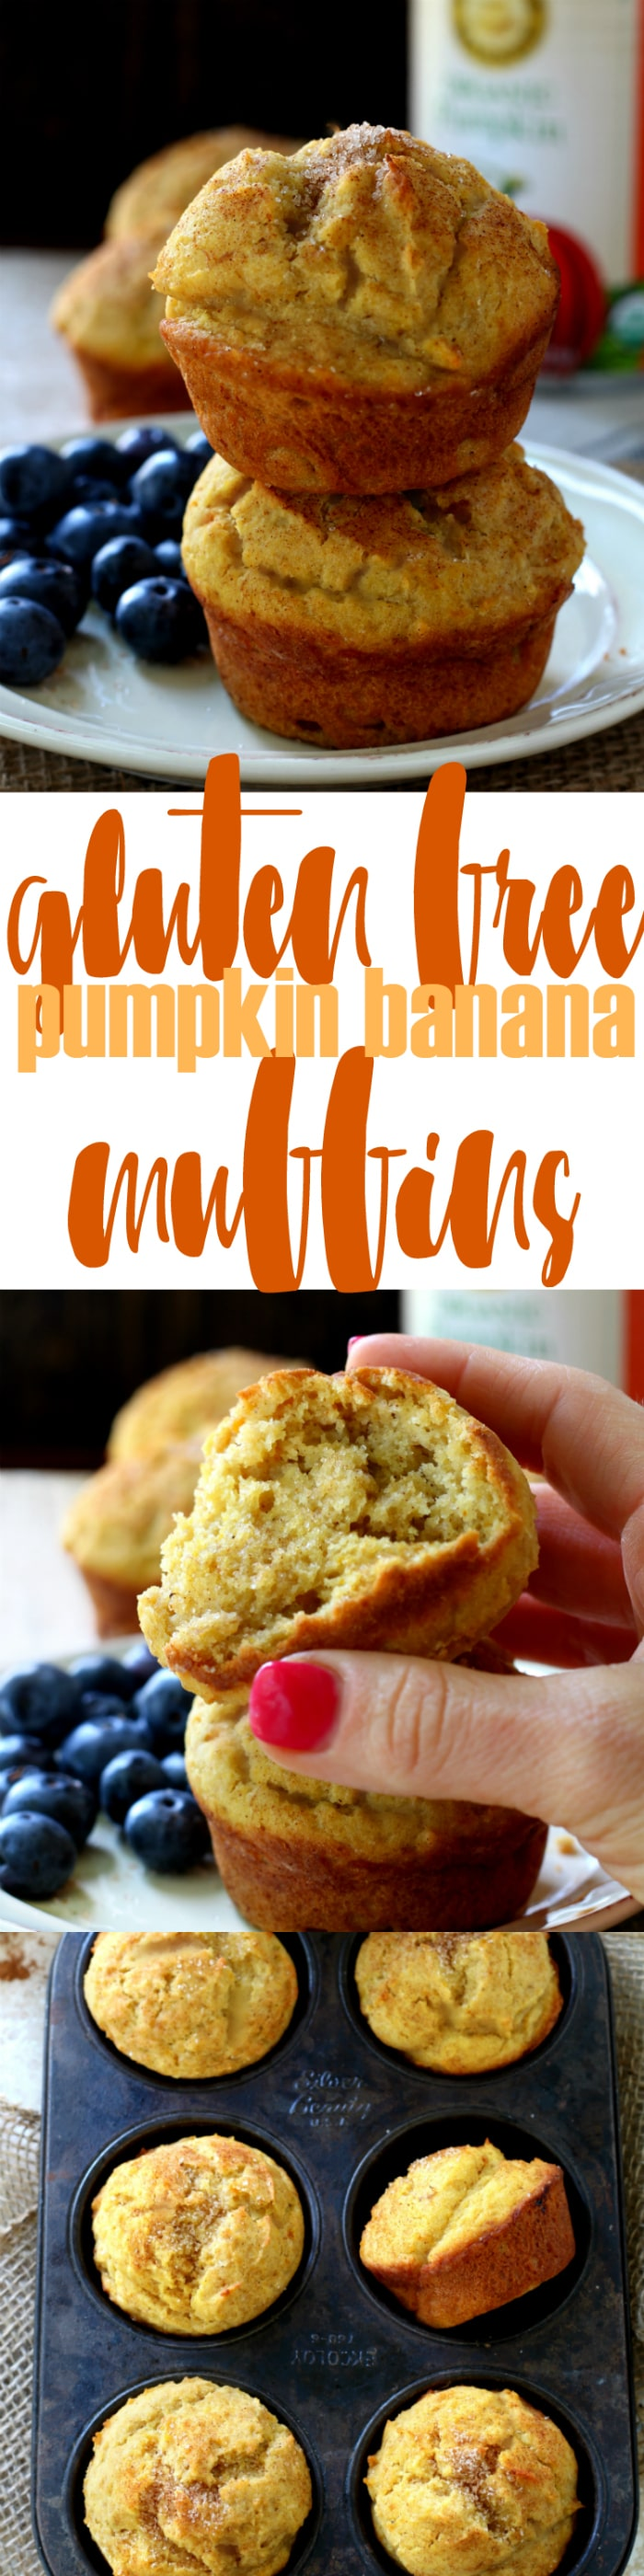 These Gluten Free Pumpkin Banana Muffins are so scrumptious that you'd never guess they're healthy! Whipped up in less than 5 minutes, they make the perfect fall-inspired breakfast or snack.